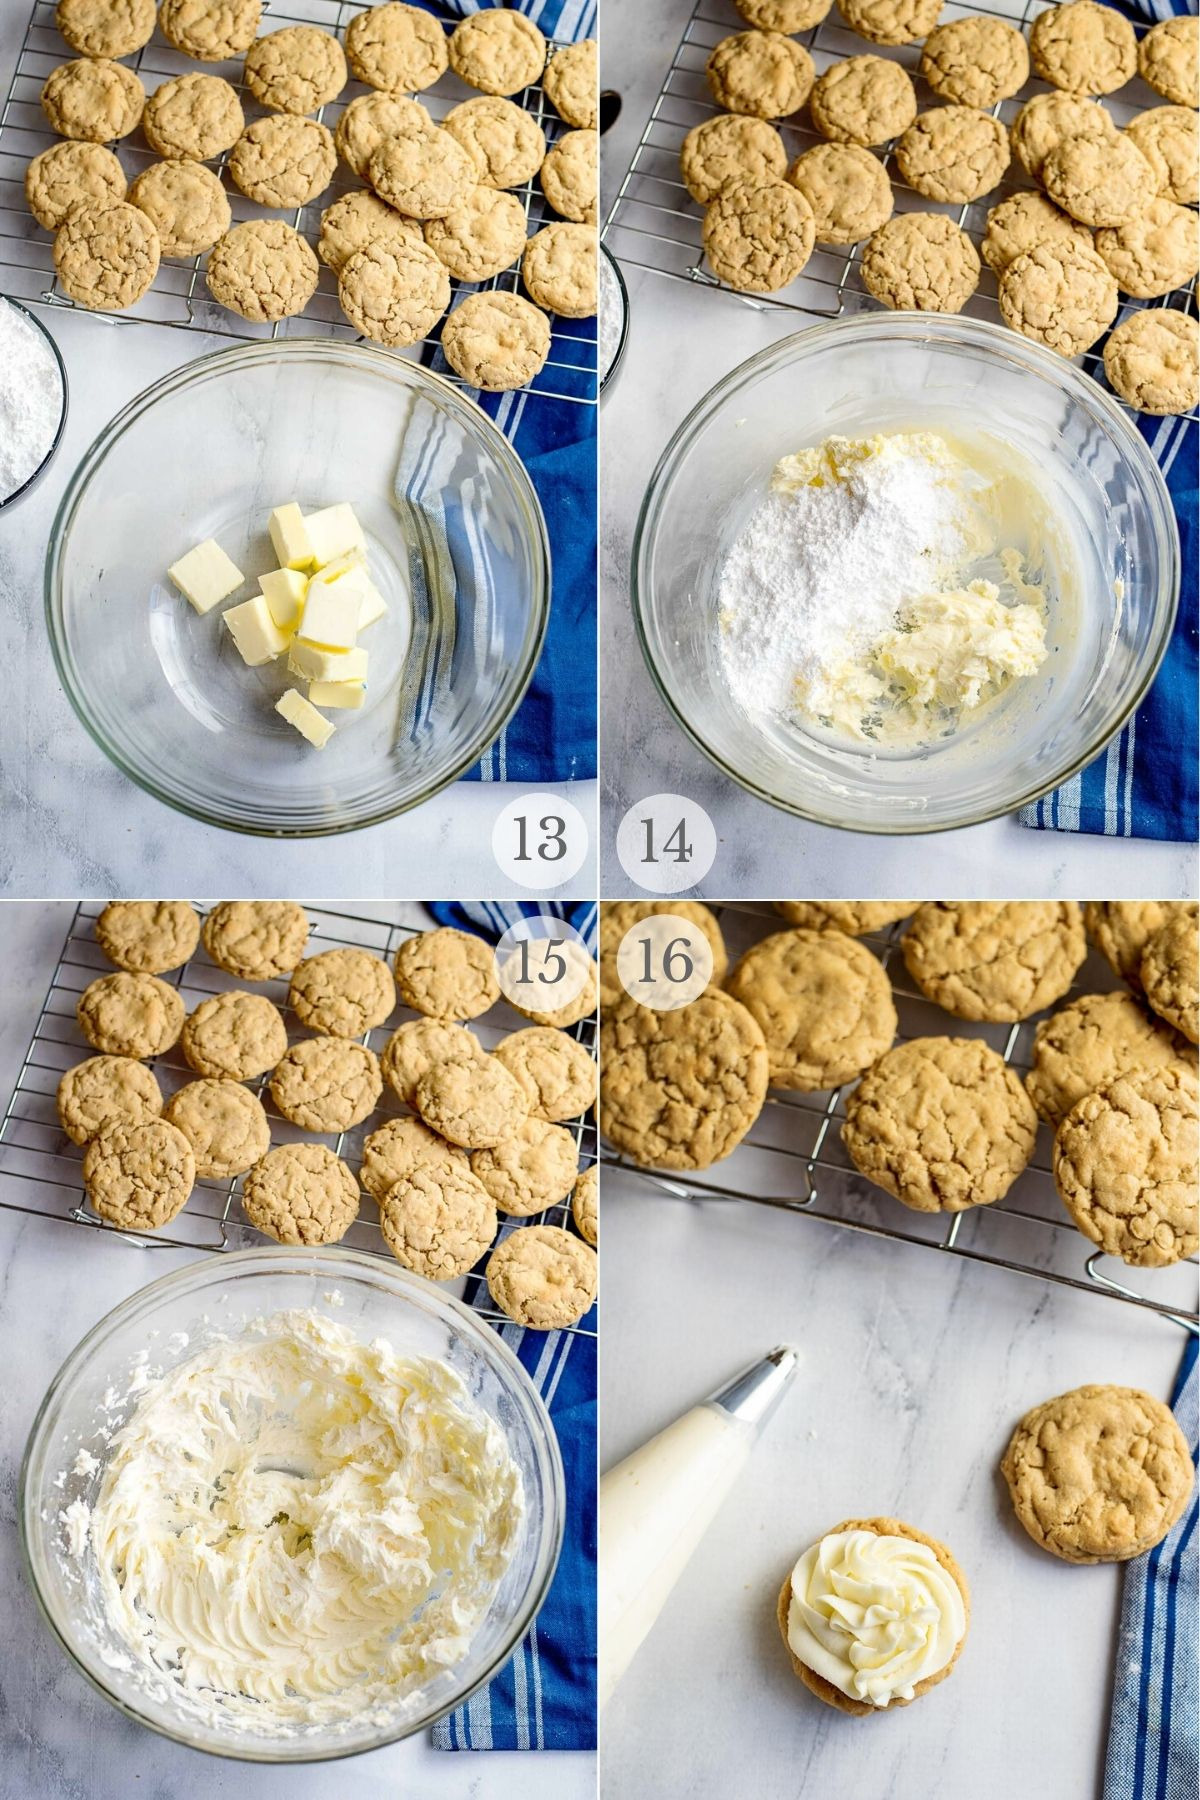 peanut butter oatmeal cookies recipes steps 13-16a